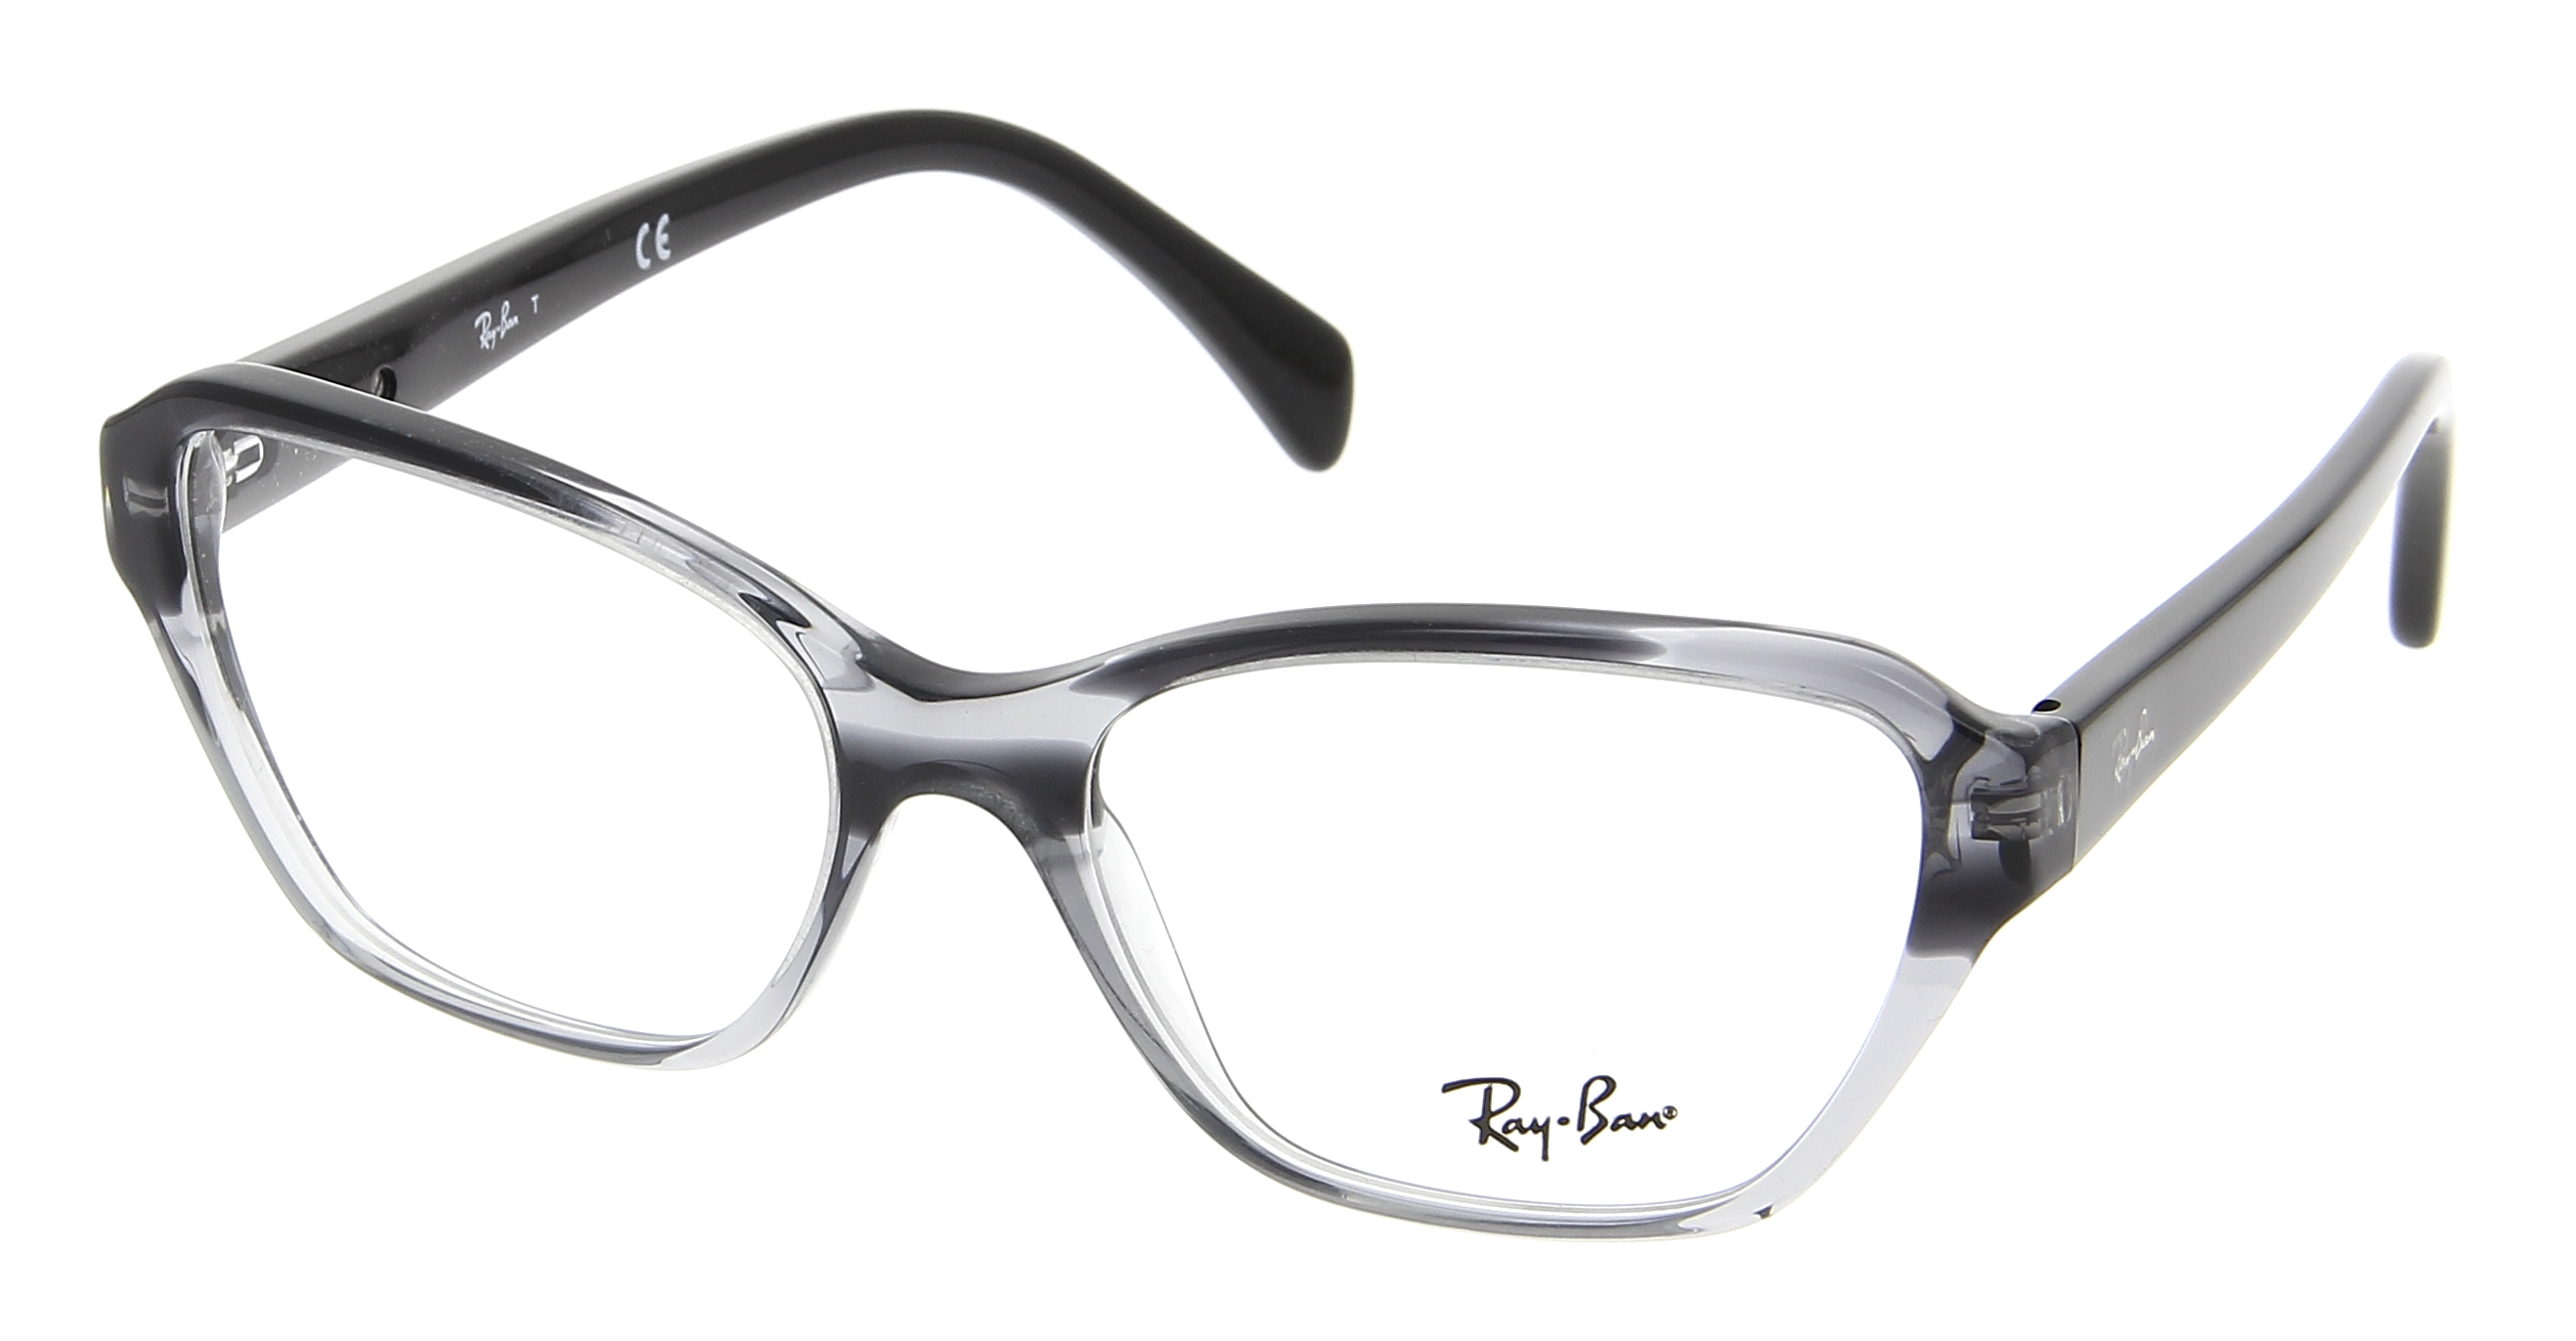 Lunette Optical Center. Optical Center Lunettes Soleil Ray Ban    greencommunitiescanada 6280c1209e48